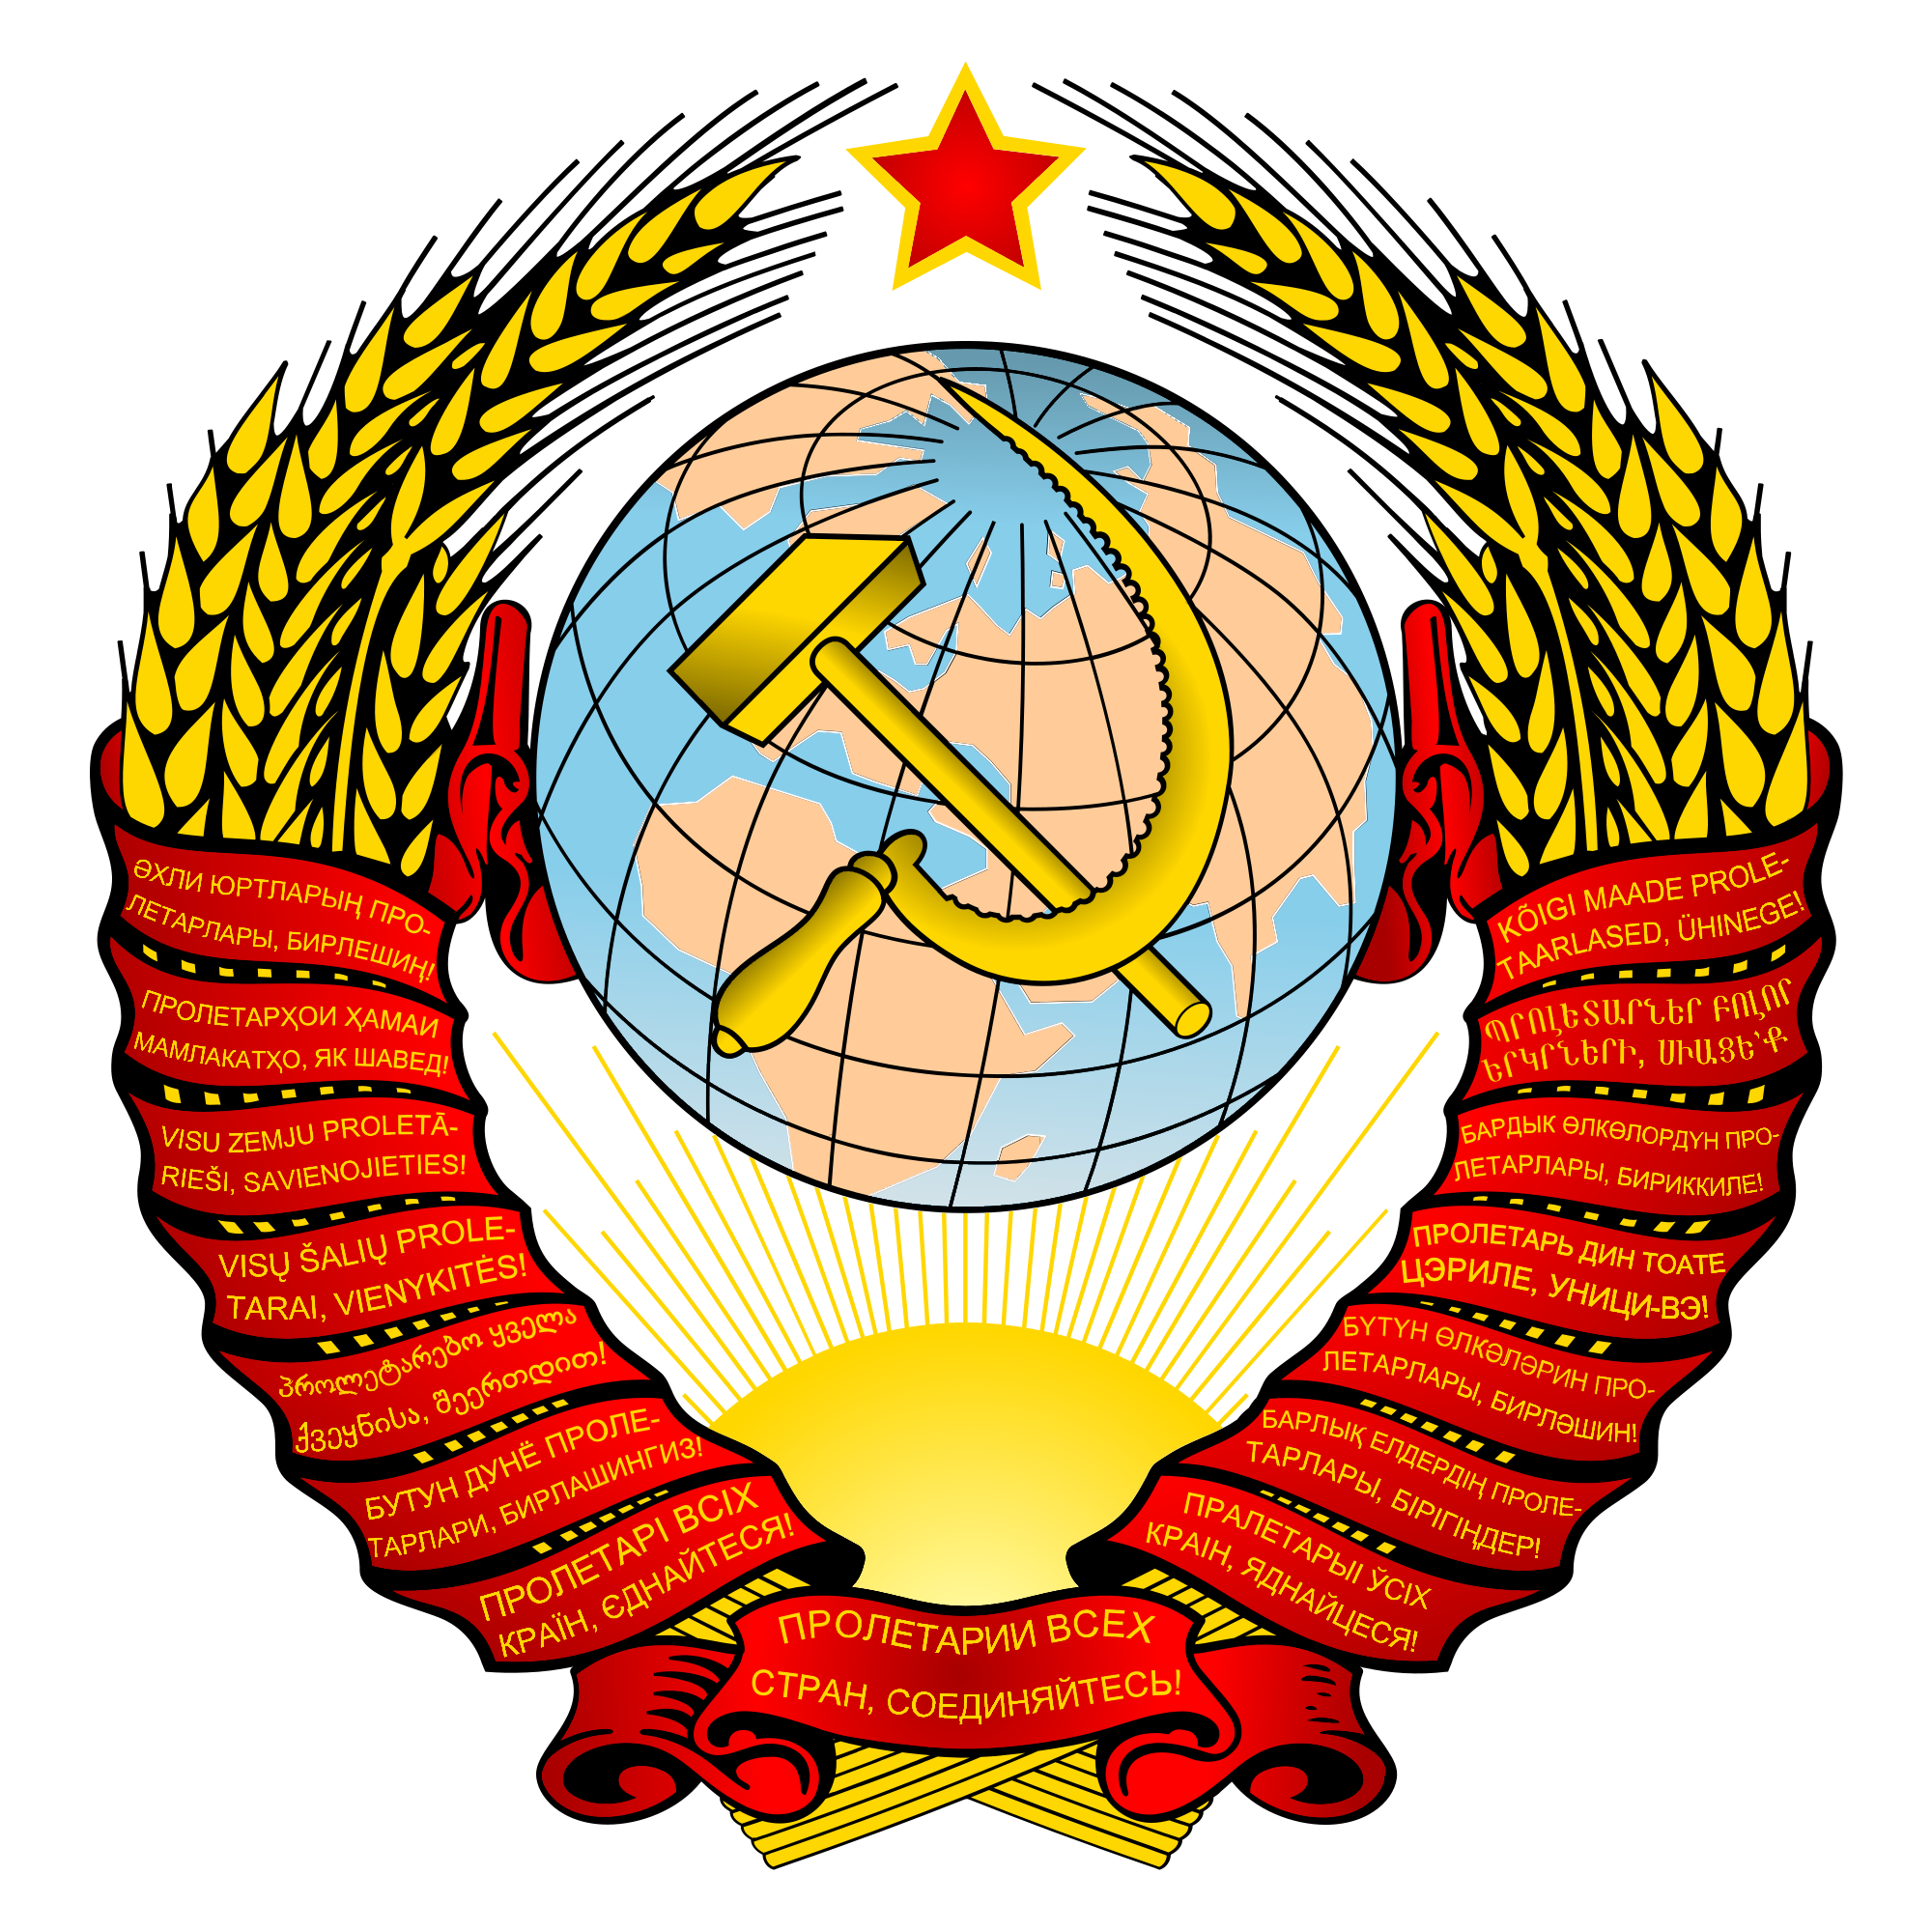 File:Coat of arms of the USSR.png.